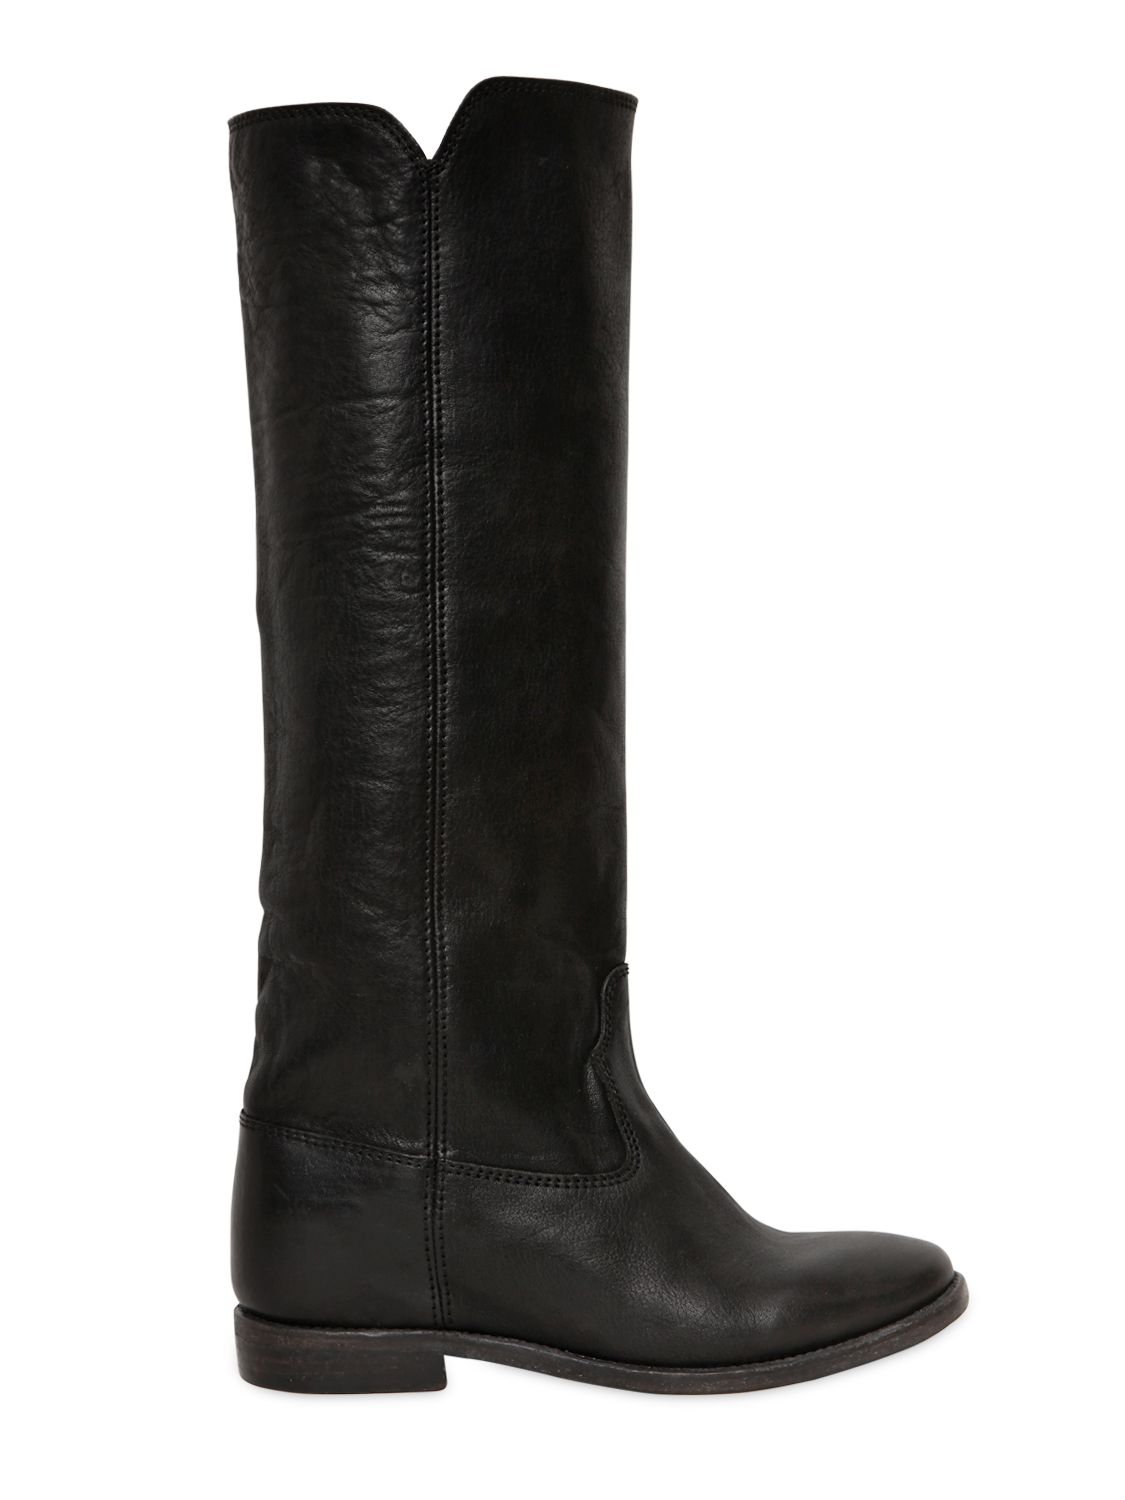 isabel marant 70mm chess leather boots in black lyst. Black Bedroom Furniture Sets. Home Design Ideas